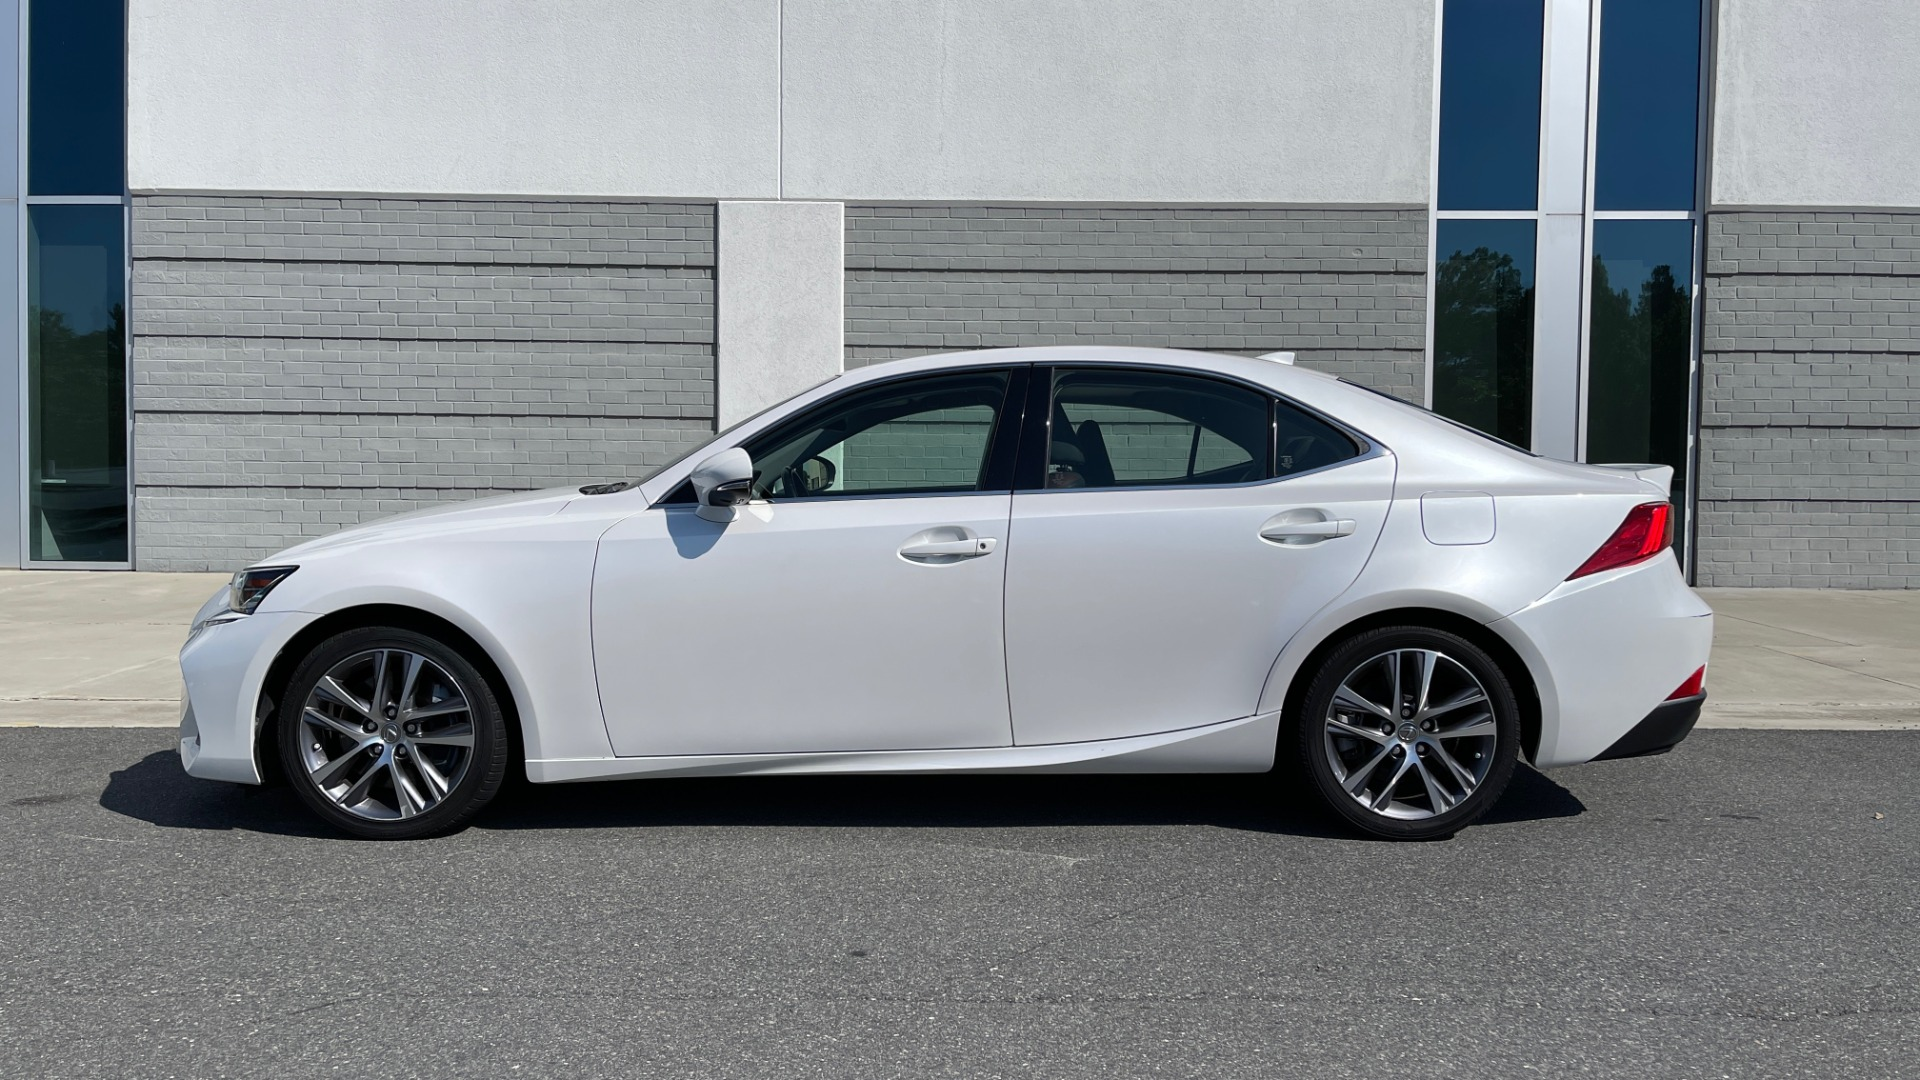 Used 2018 Lexus IS 300 / 2.0L TURBO / 8-SPD AUTO / SUNROOF / REARVIEW for sale $29,495 at Formula Imports in Charlotte NC 28227 4